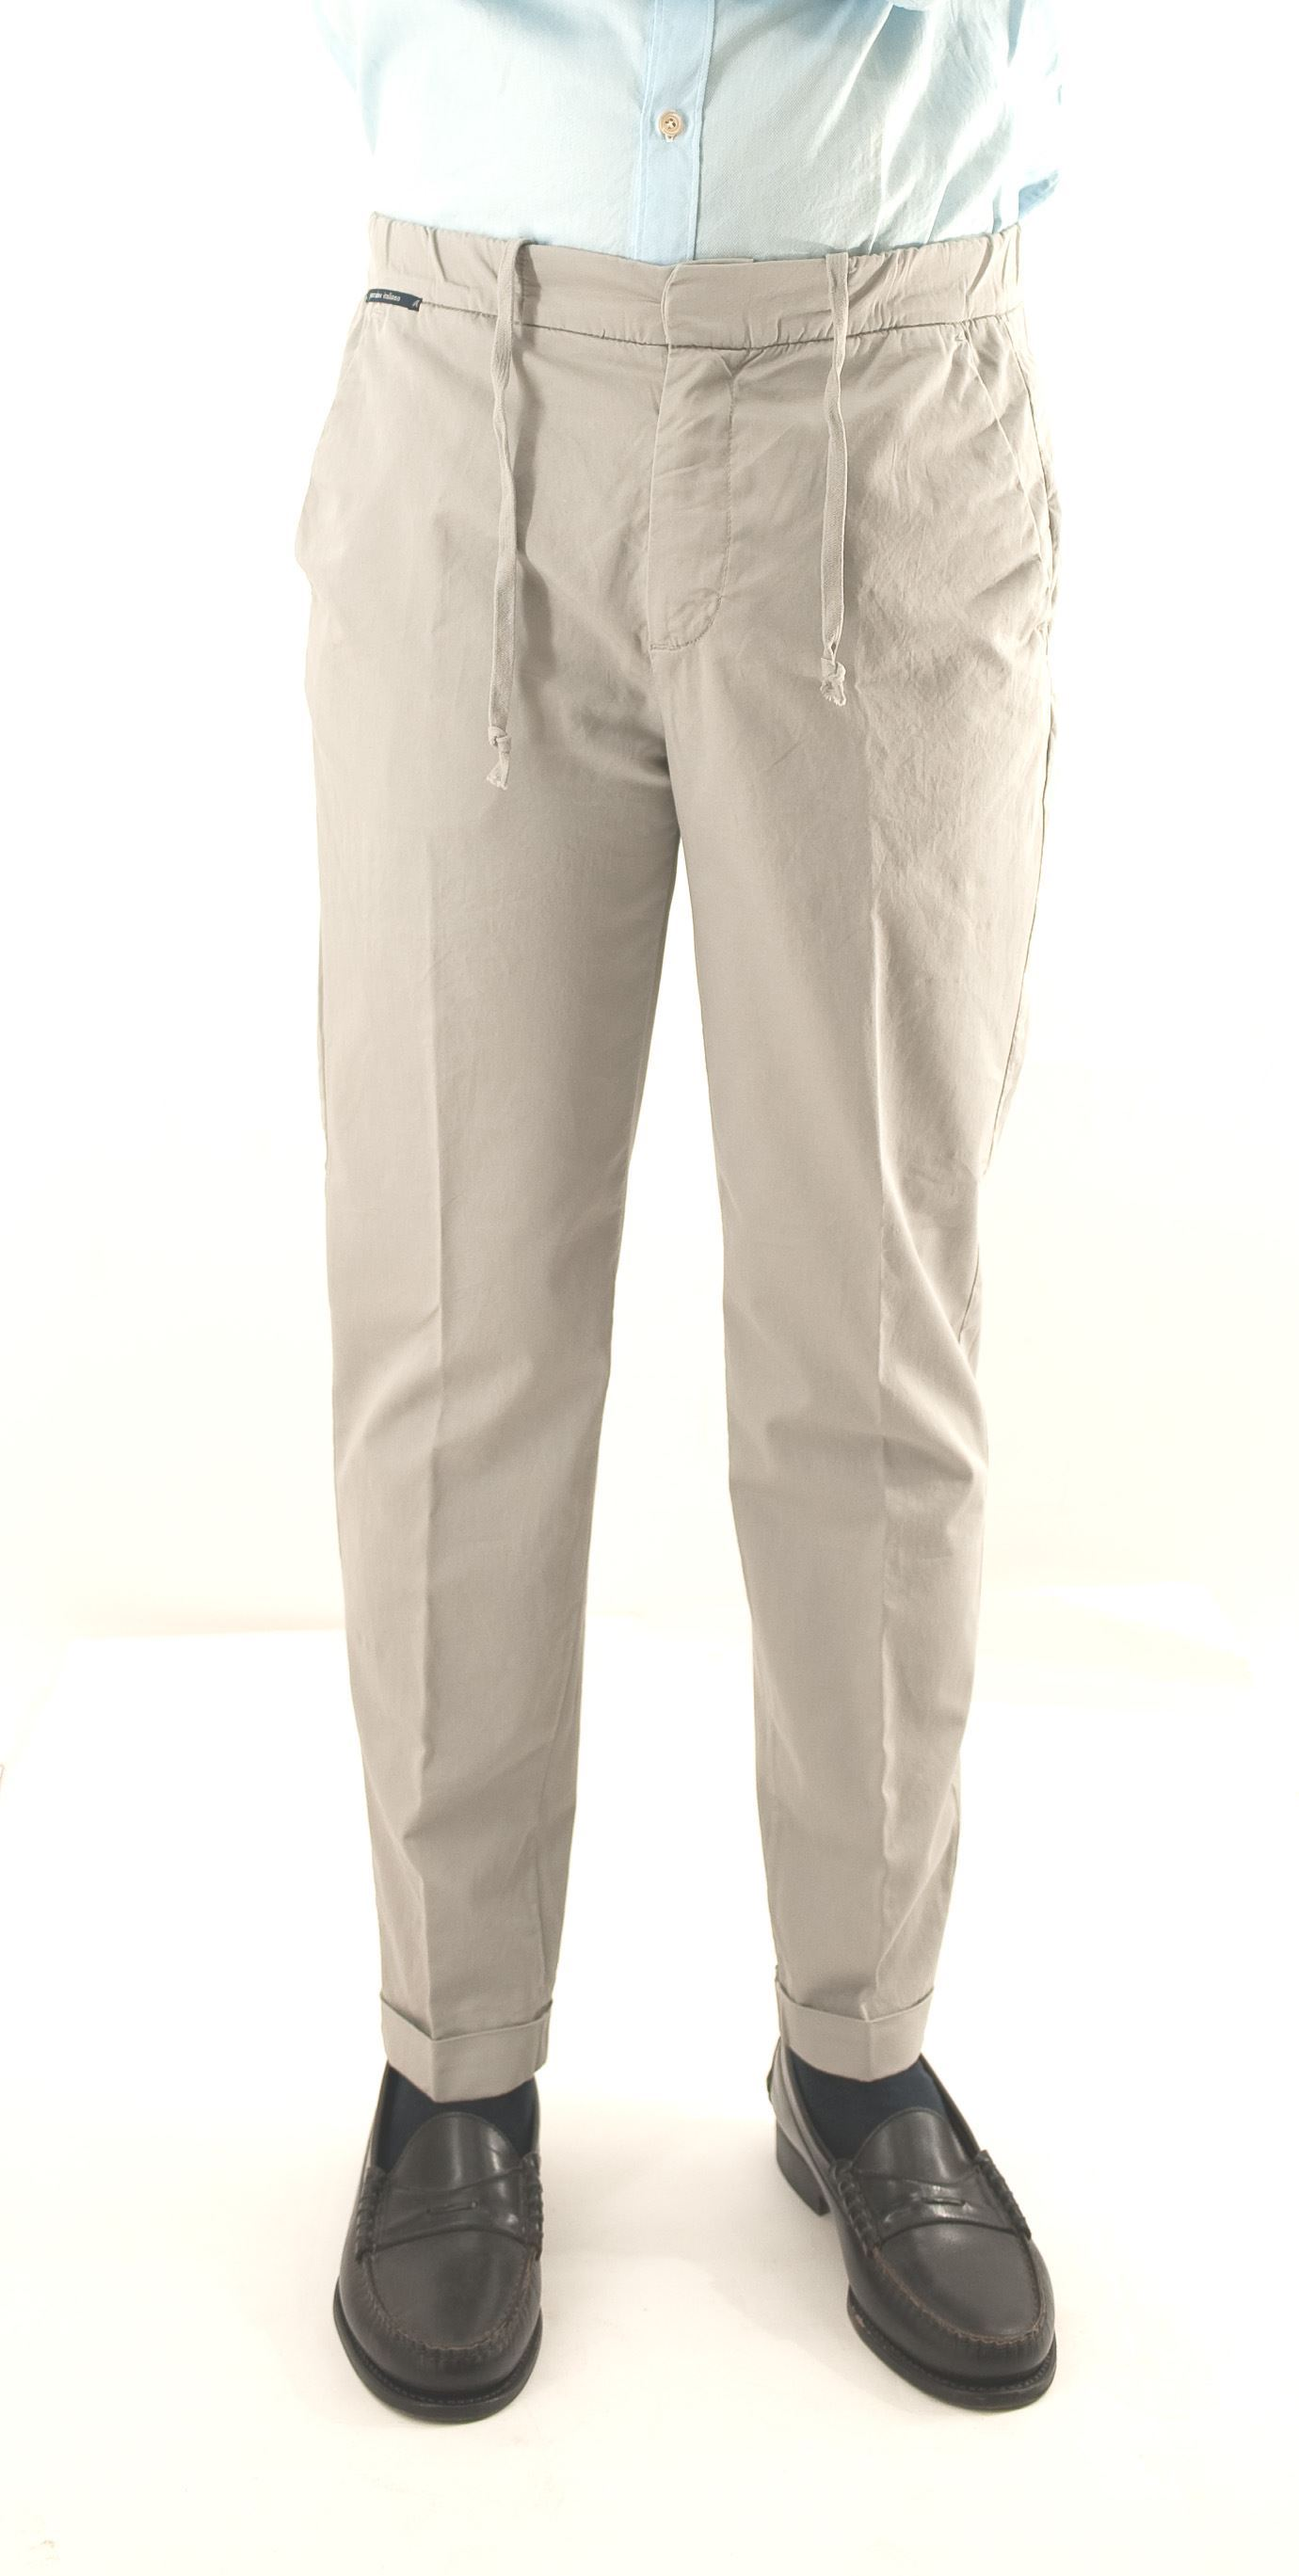 Picture of Ash colored cotton trousers with drawstring